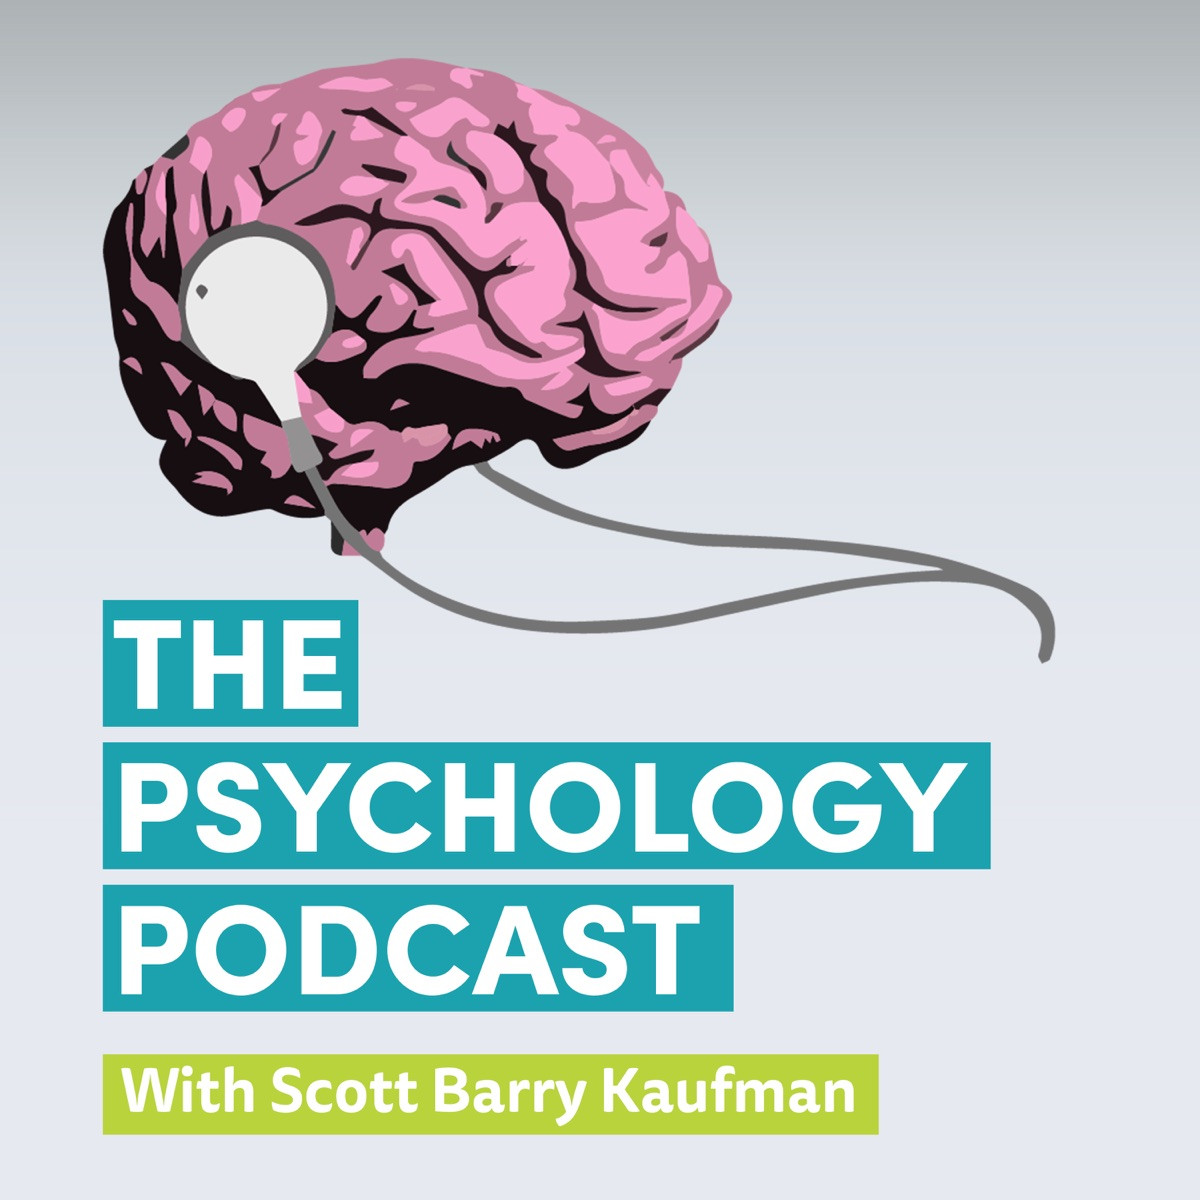 The Psychology Podcast with Scott Barry Kaufman